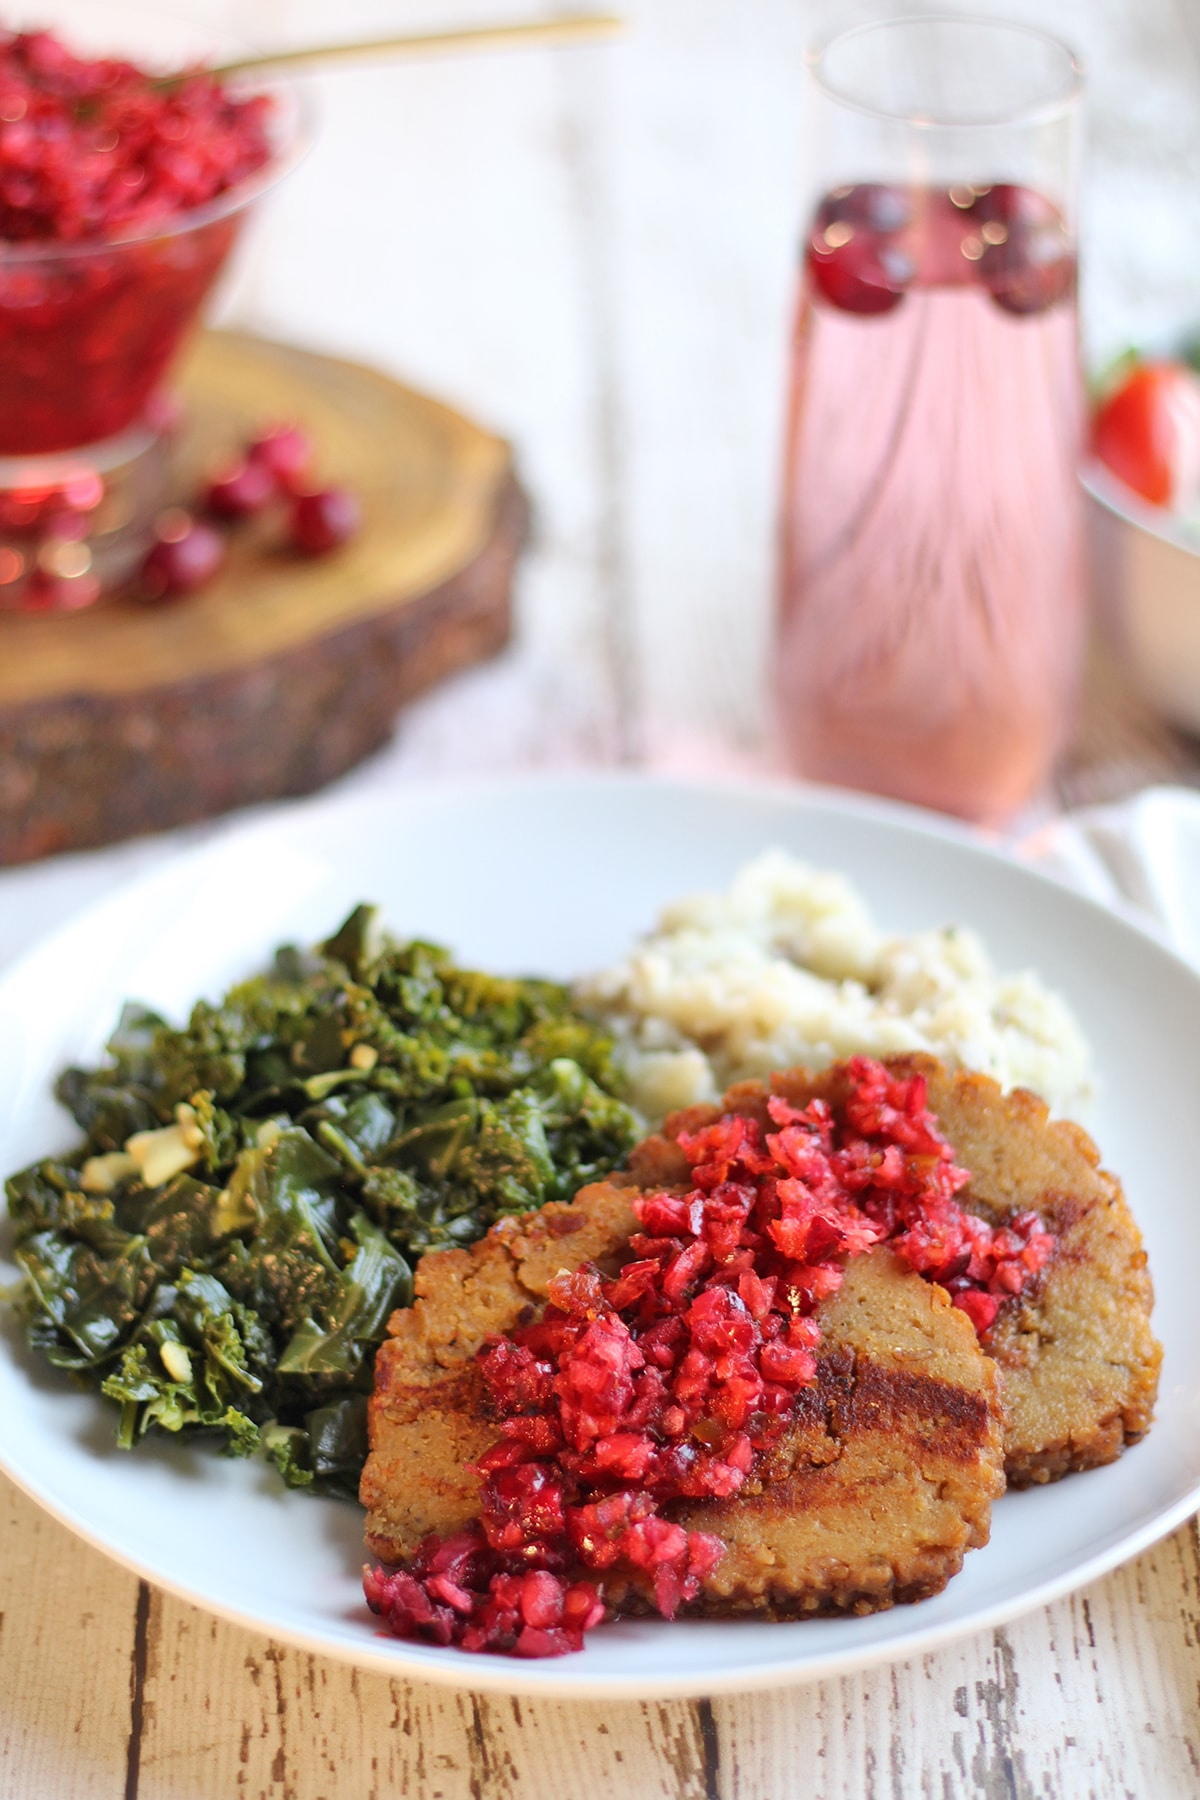 Cranberry salsa over seitan roast with collards and mashed potatoes.